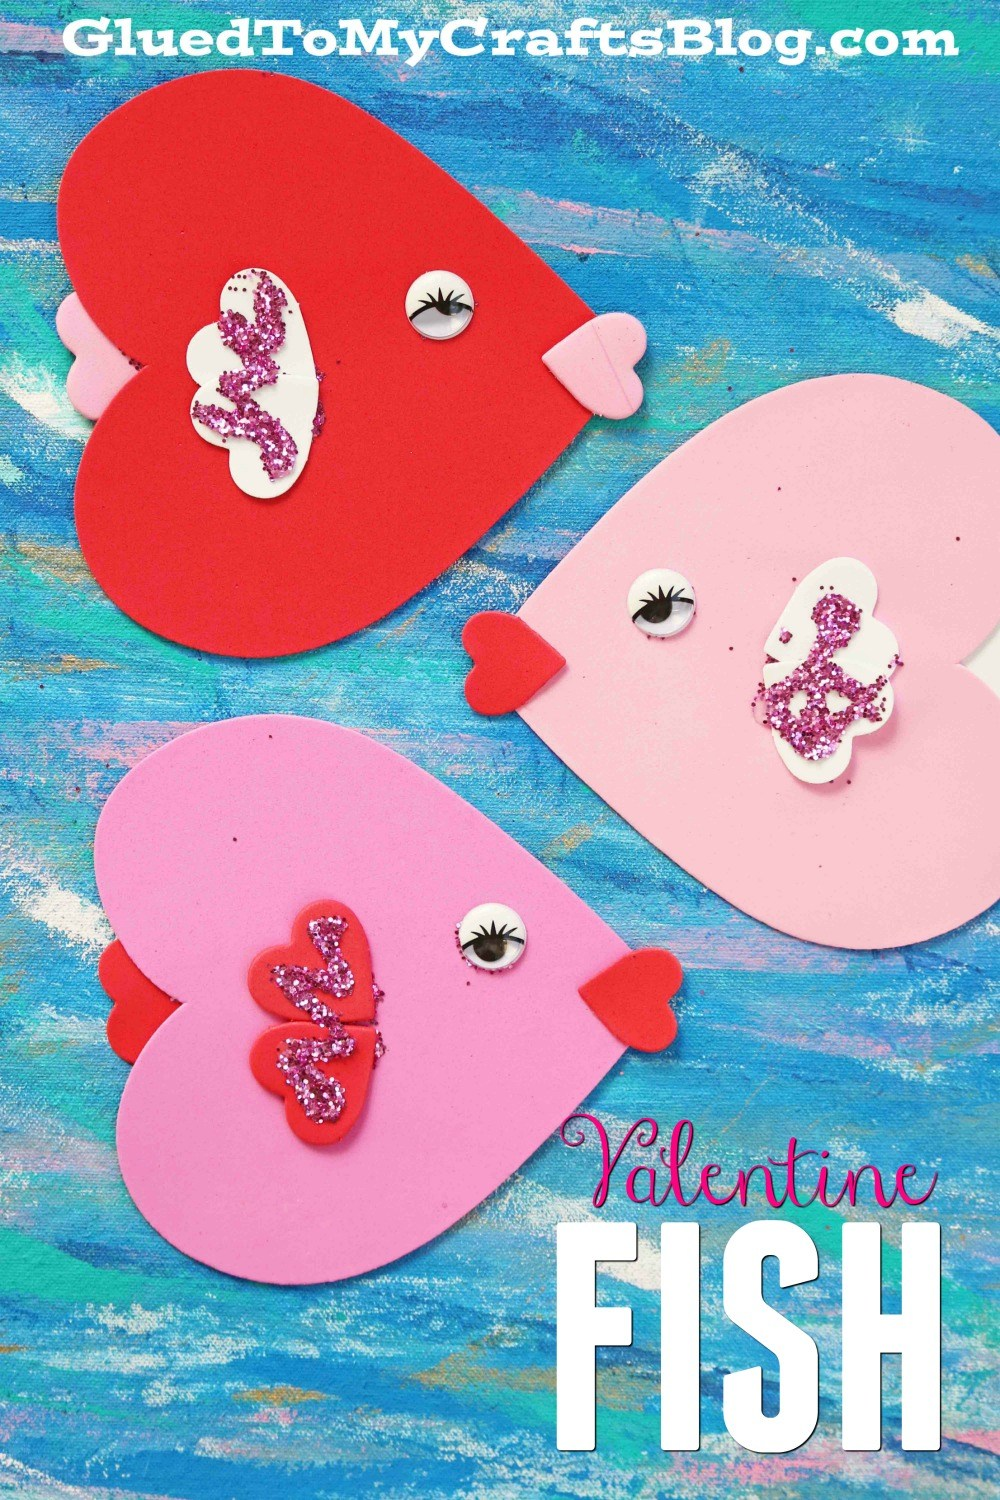 Heart-Themed Kid's Craft for Valentine's Day: Heart fishes